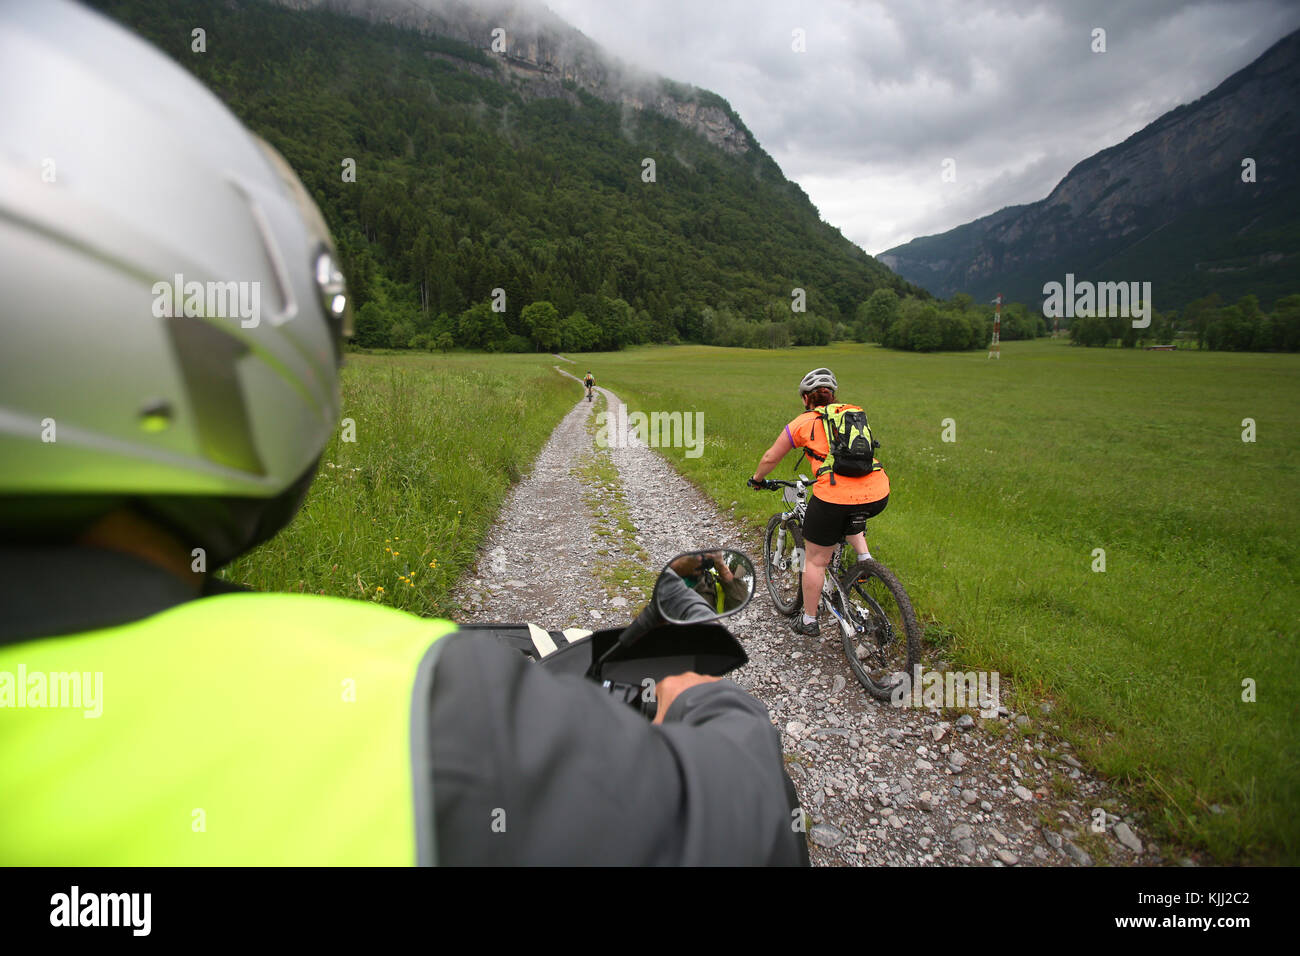 Dre Dans le l'Darbon : mountain bike race in the french Alps. France. - Stock Image